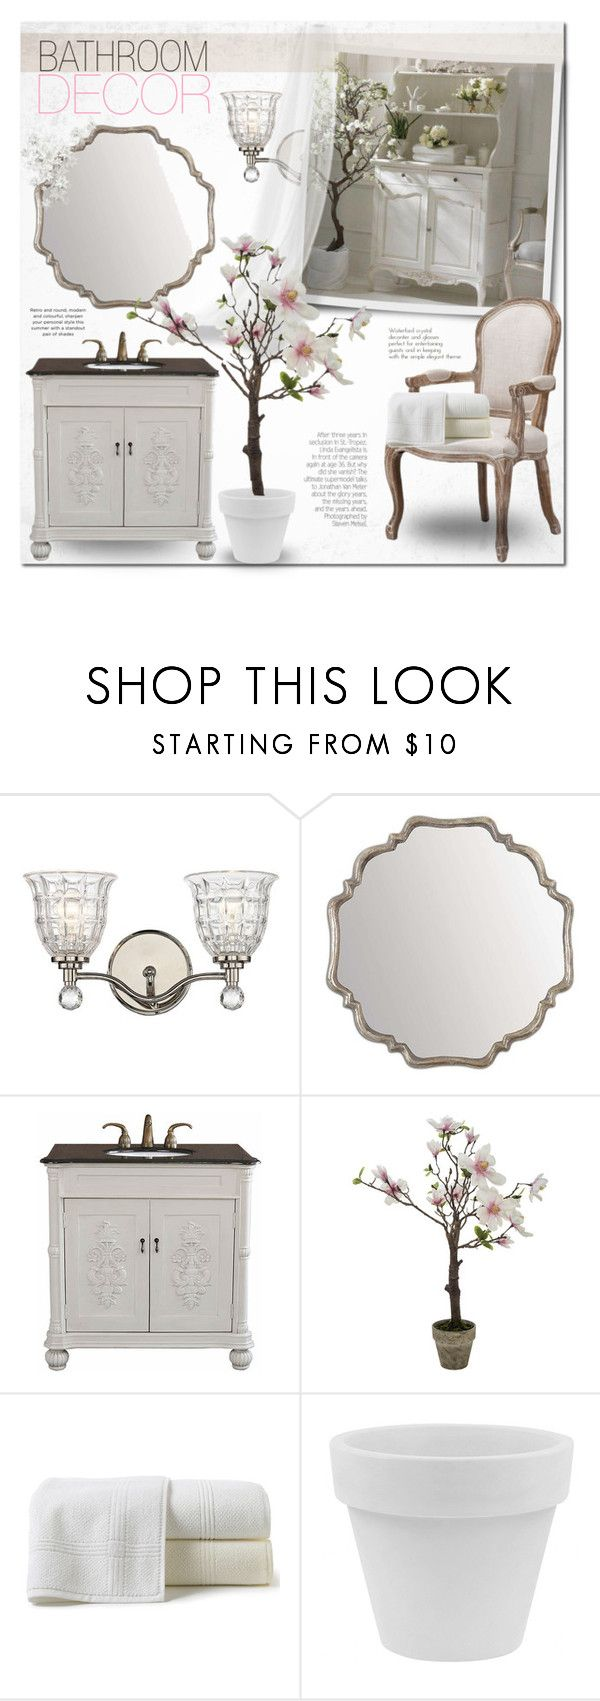 """""""Shabby Bathroom Decor"""" by alexandrazeres ❤ liked on Polyvore featuring interior, interiors, interior design, home, home decor, interior decorating, Savoy House, Home Decorators Collection, Bellaterra Home and Peacock Alley"""